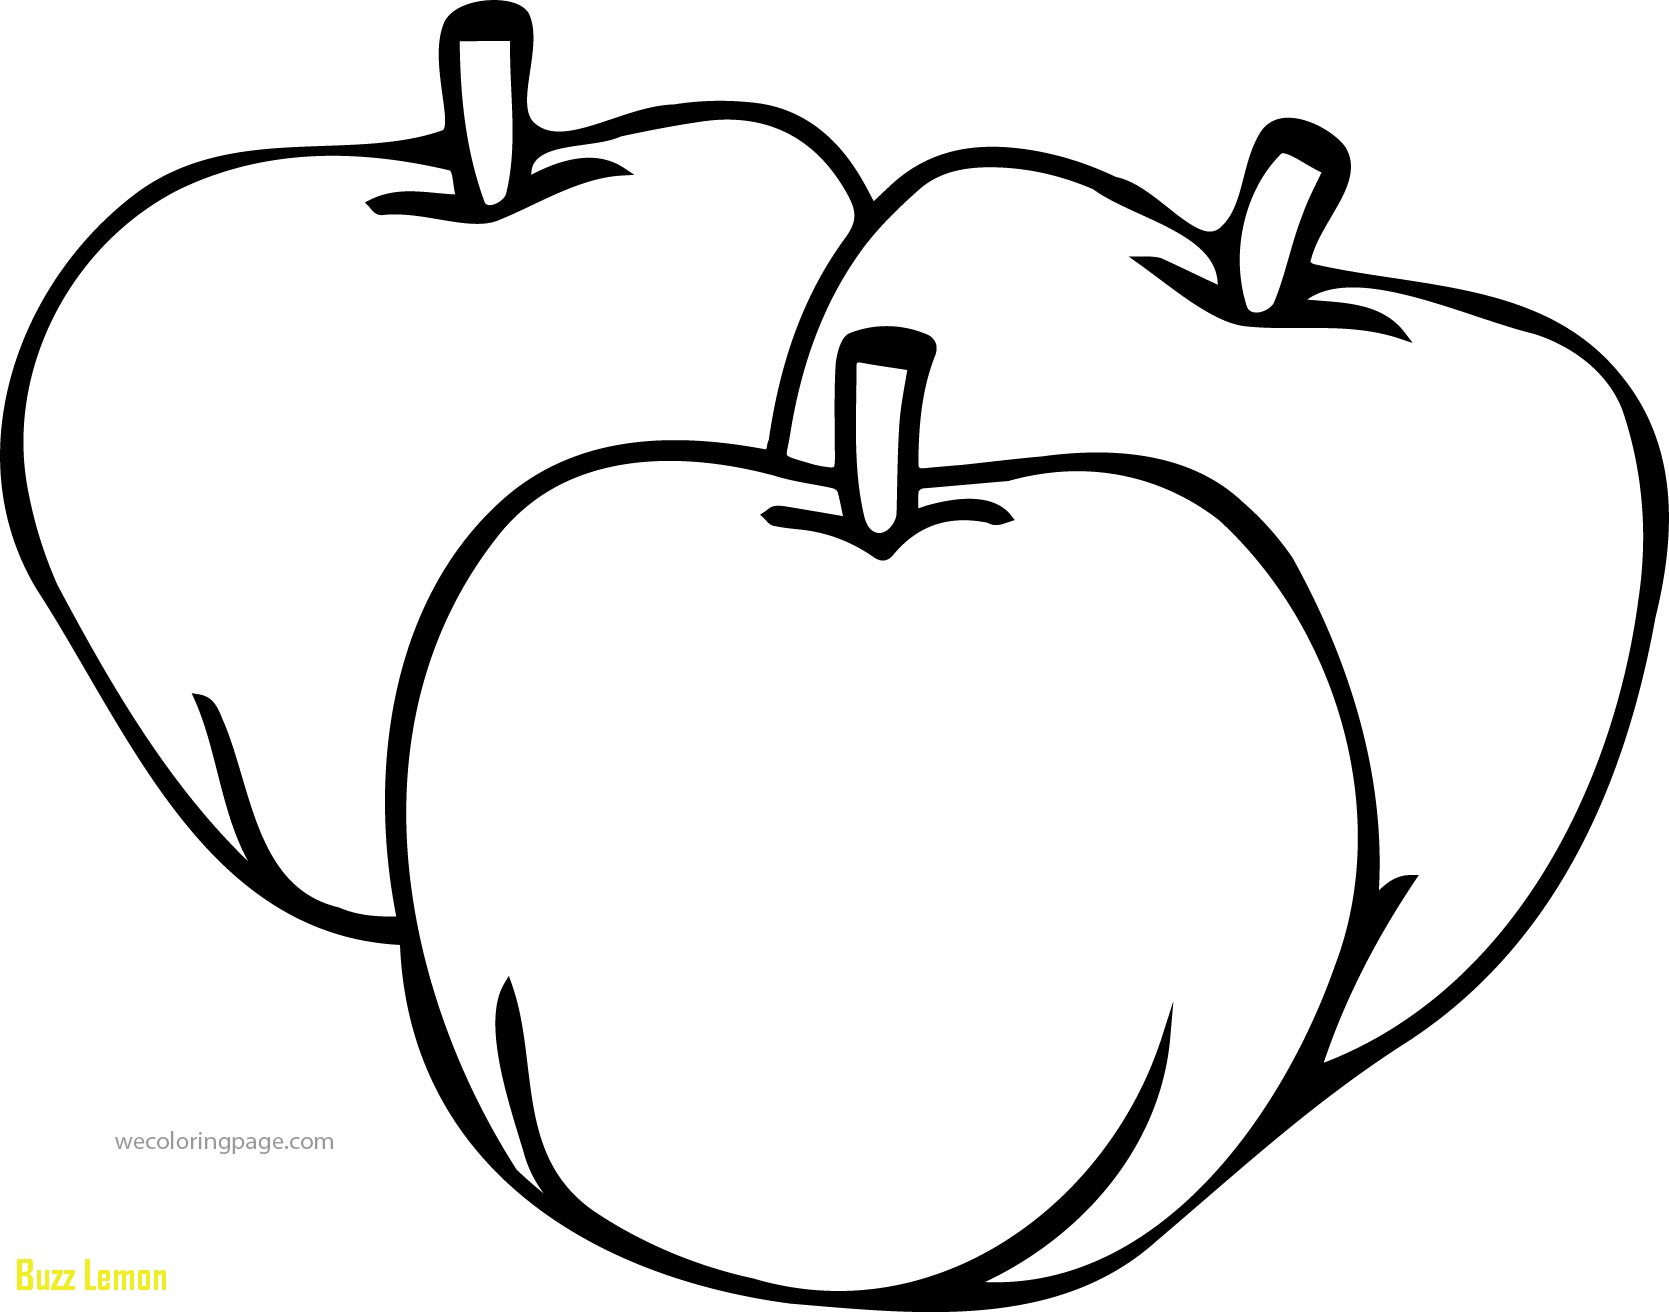 pictures of apples to color free printable apple coloring pages for kids pictures color of to apples